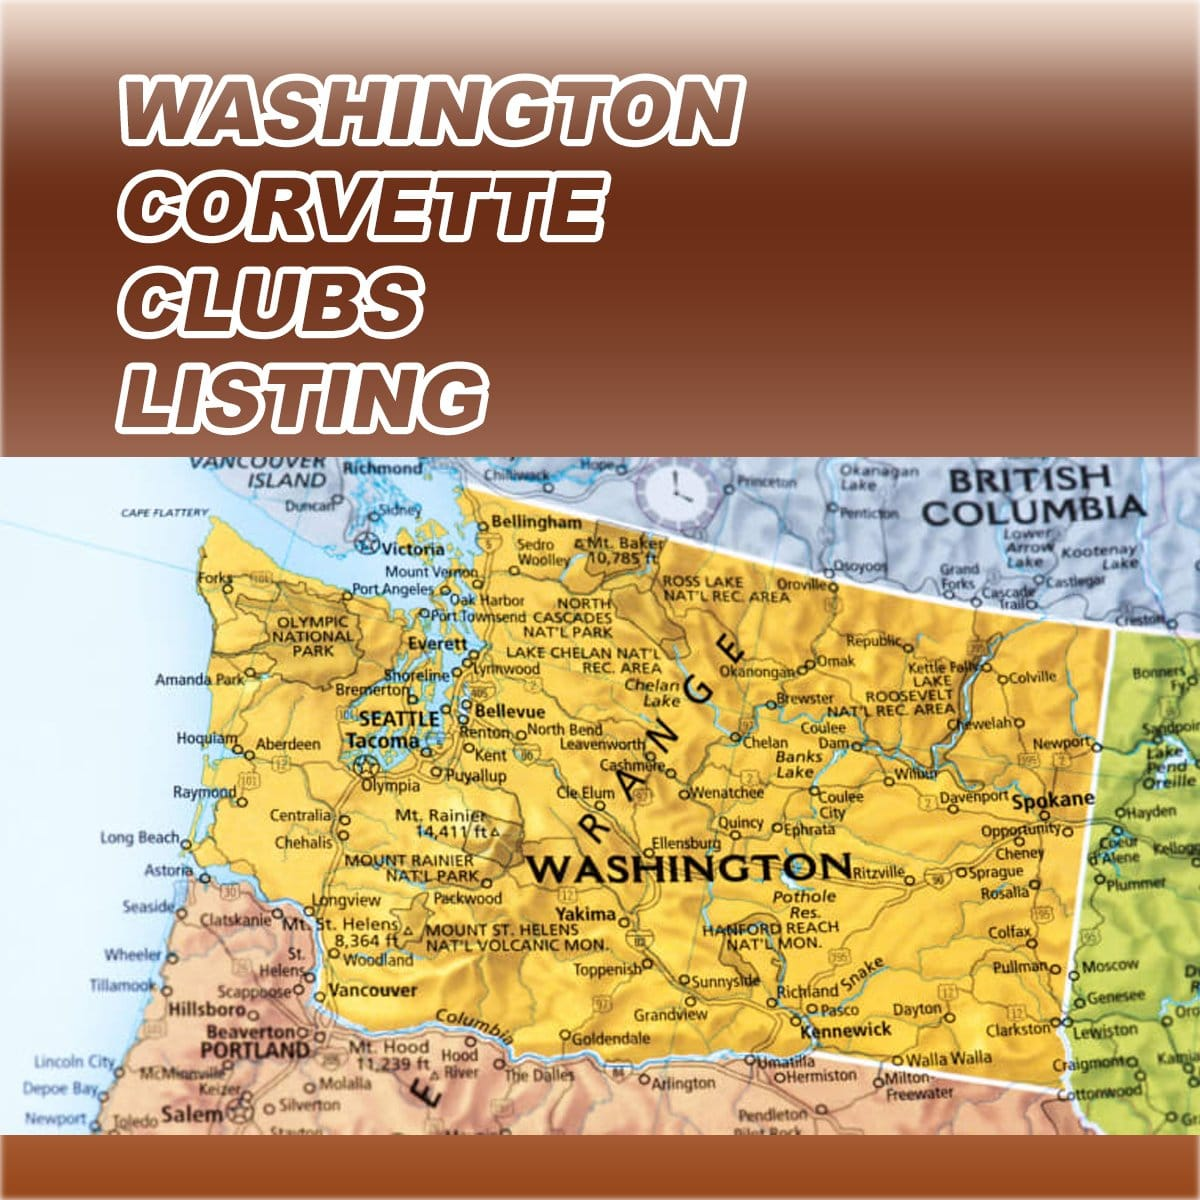 Washington Corvette Club Directory